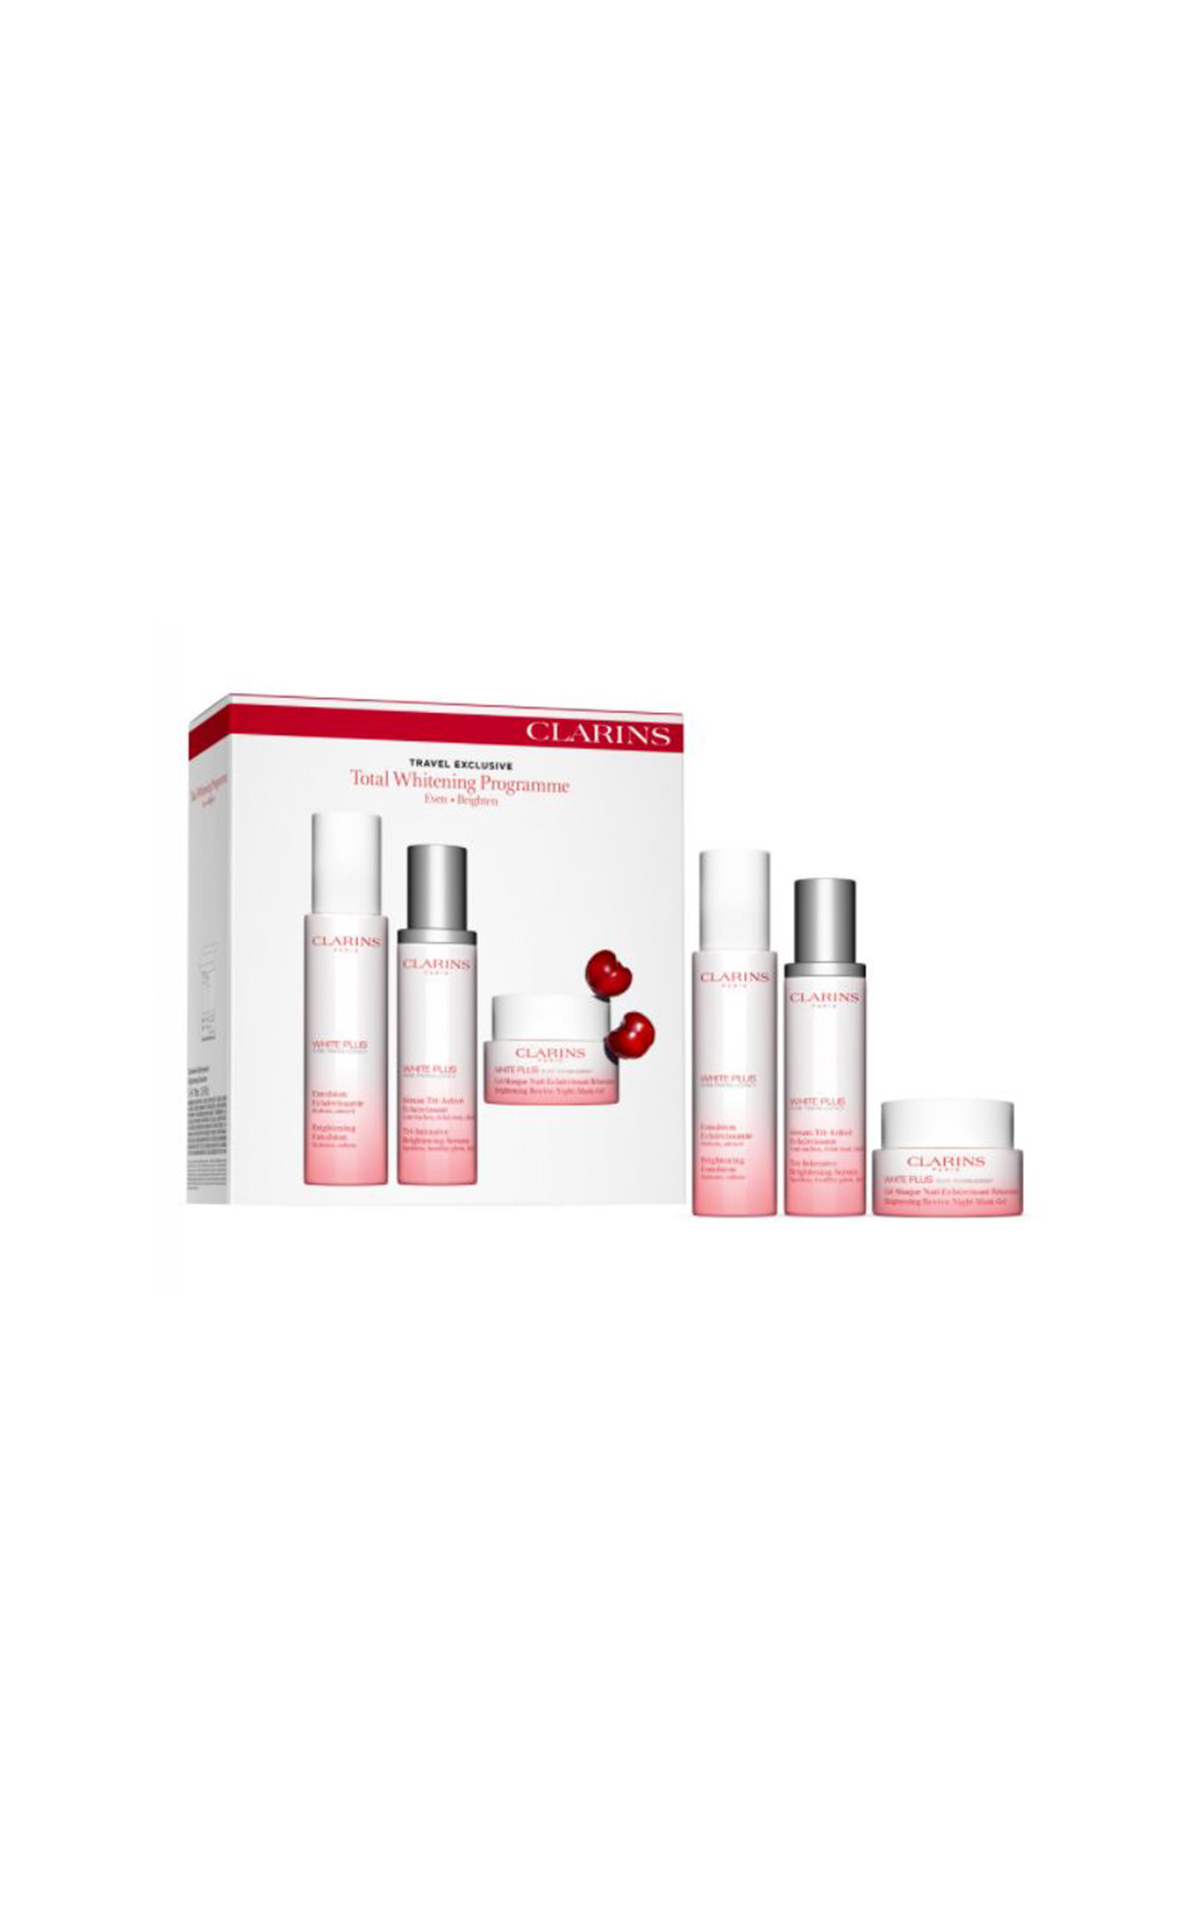 Clarins Total whitening program set La Vallée Village